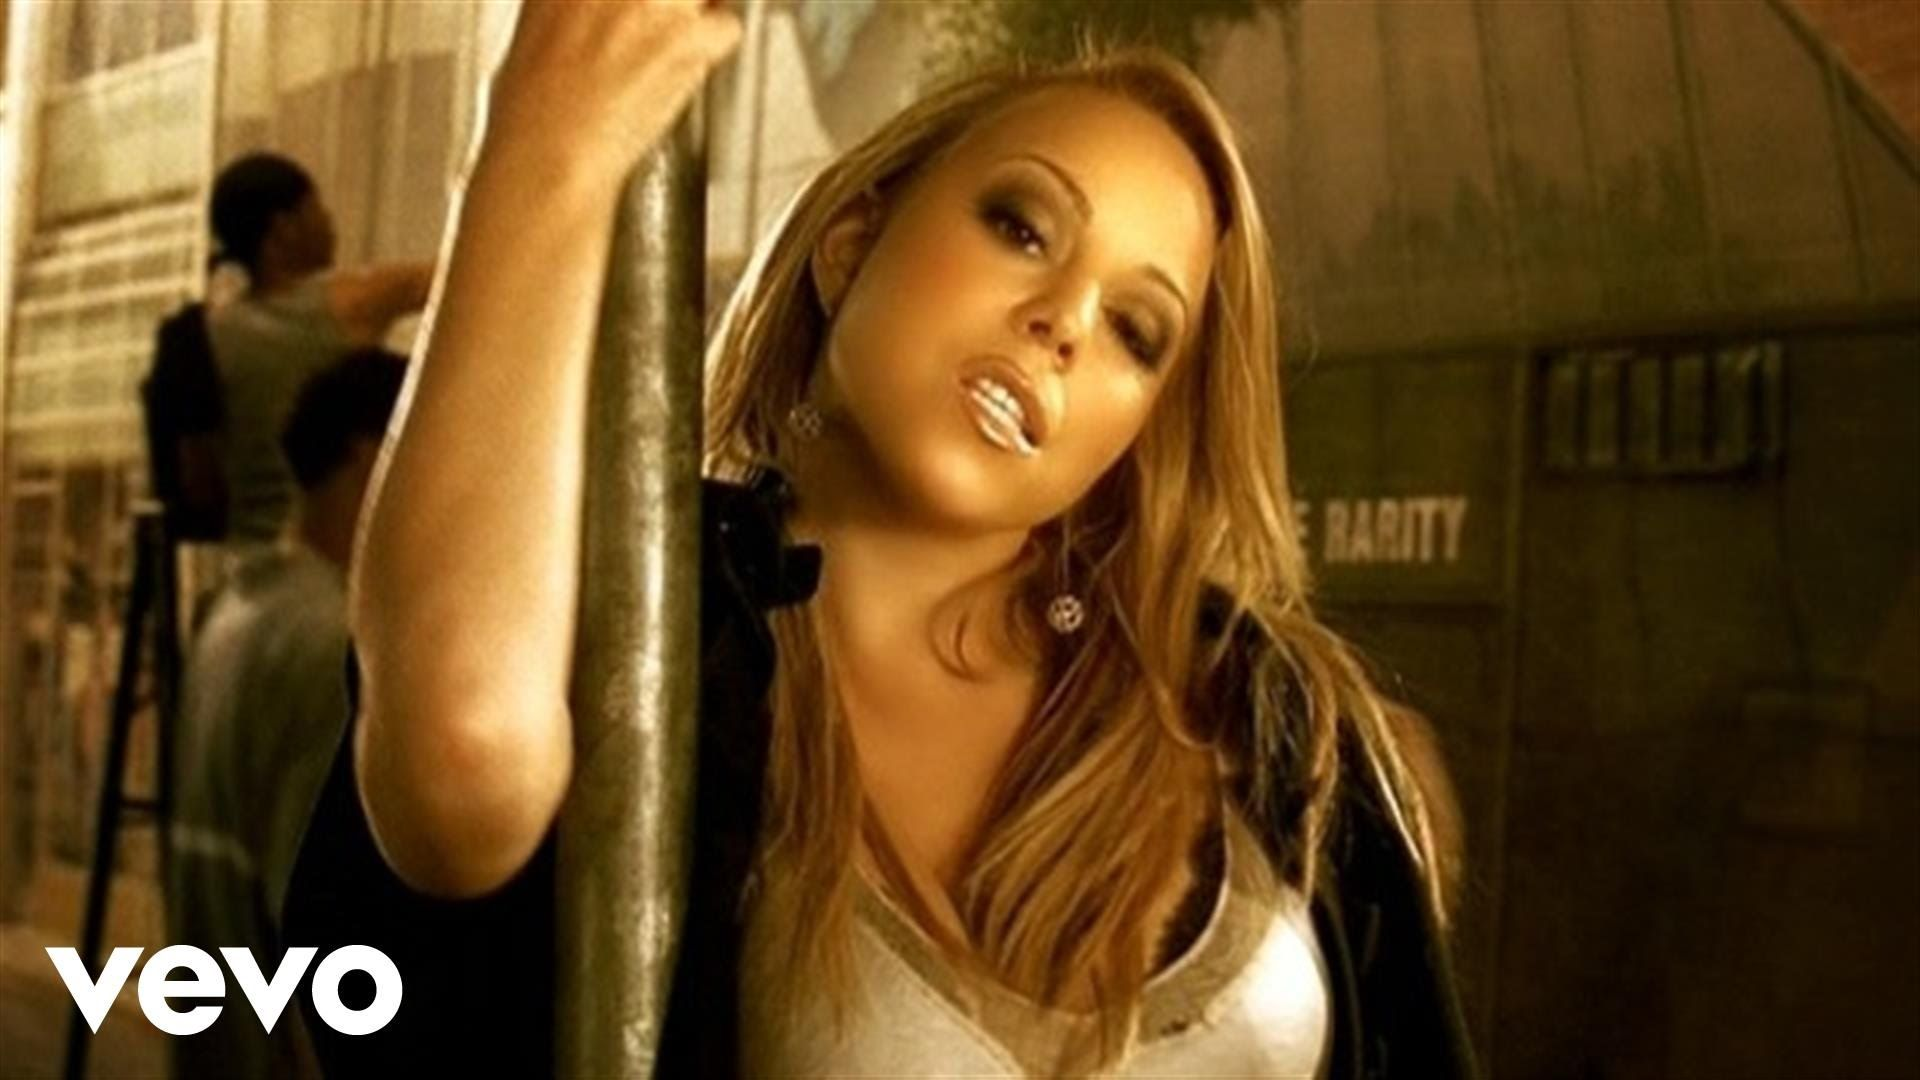 Mariah Carey Shake It Off for Throwback Thursday